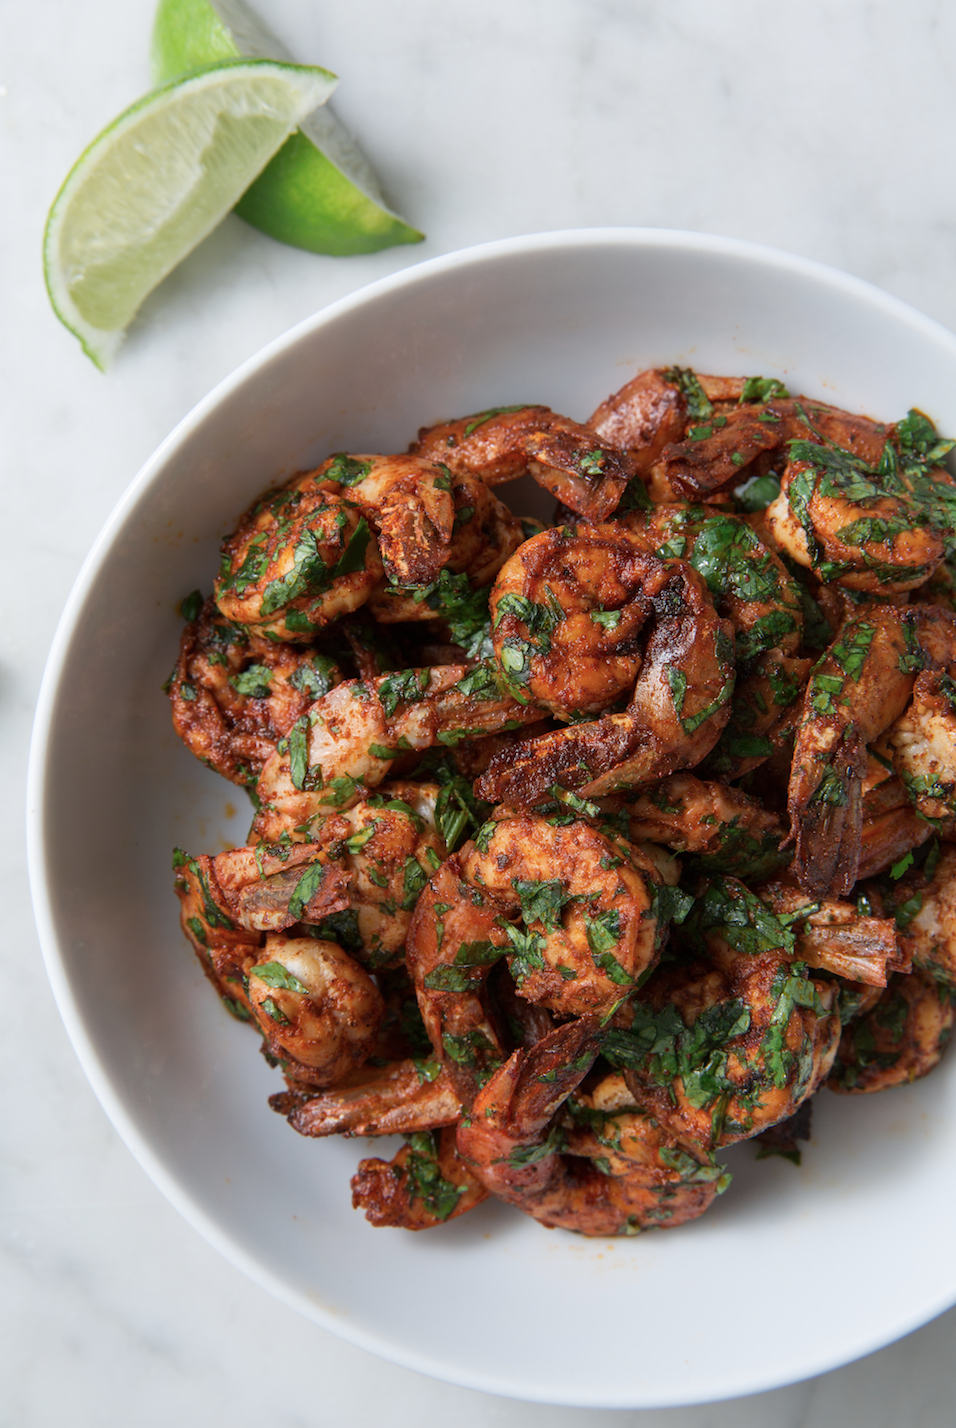 """<p>Add these to tacos, a salad bowl, or skewers.</p><p>Get the recipe from <a href=""""https://www.delish.com/cooking/recipe-ideas/a22535146/best-chili-lime-shrimp-recipe/"""" rel=""""nofollow noopener"""" target=""""_blank"""" data-ylk=""""slk:Delish"""" class=""""link rapid-noclick-resp"""">Delish</a>.</p>"""